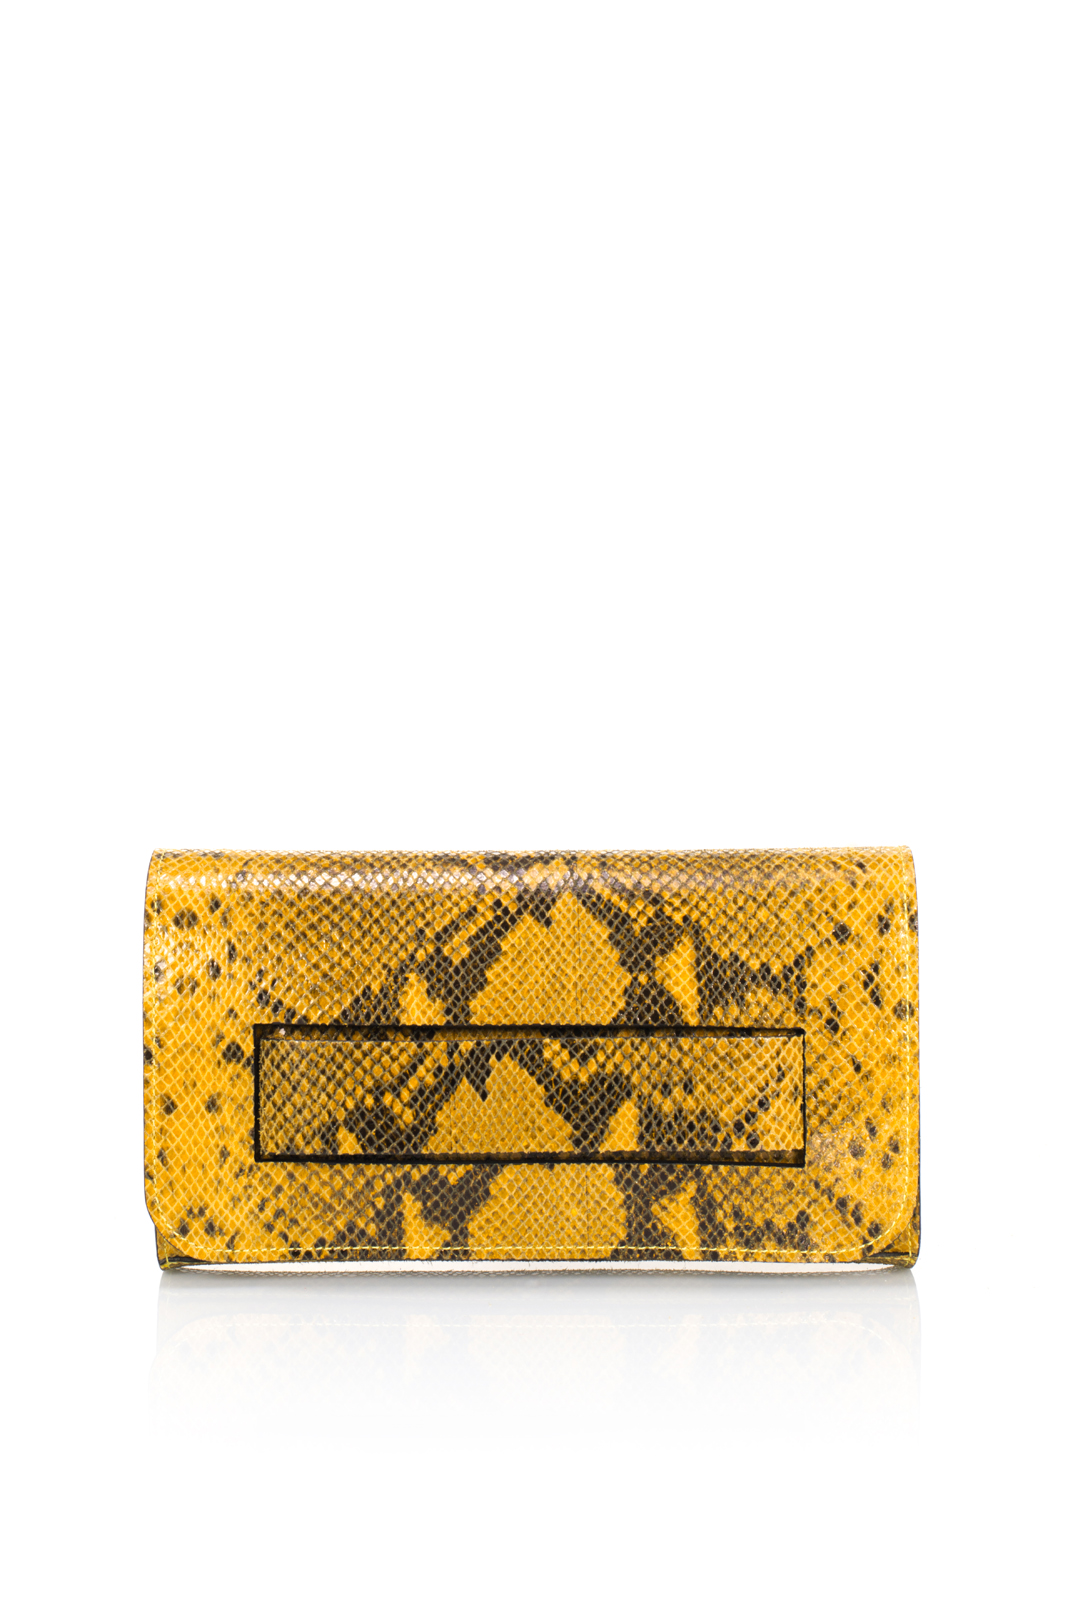 ALTHEA・PRINTED SUEDE・YELLOW